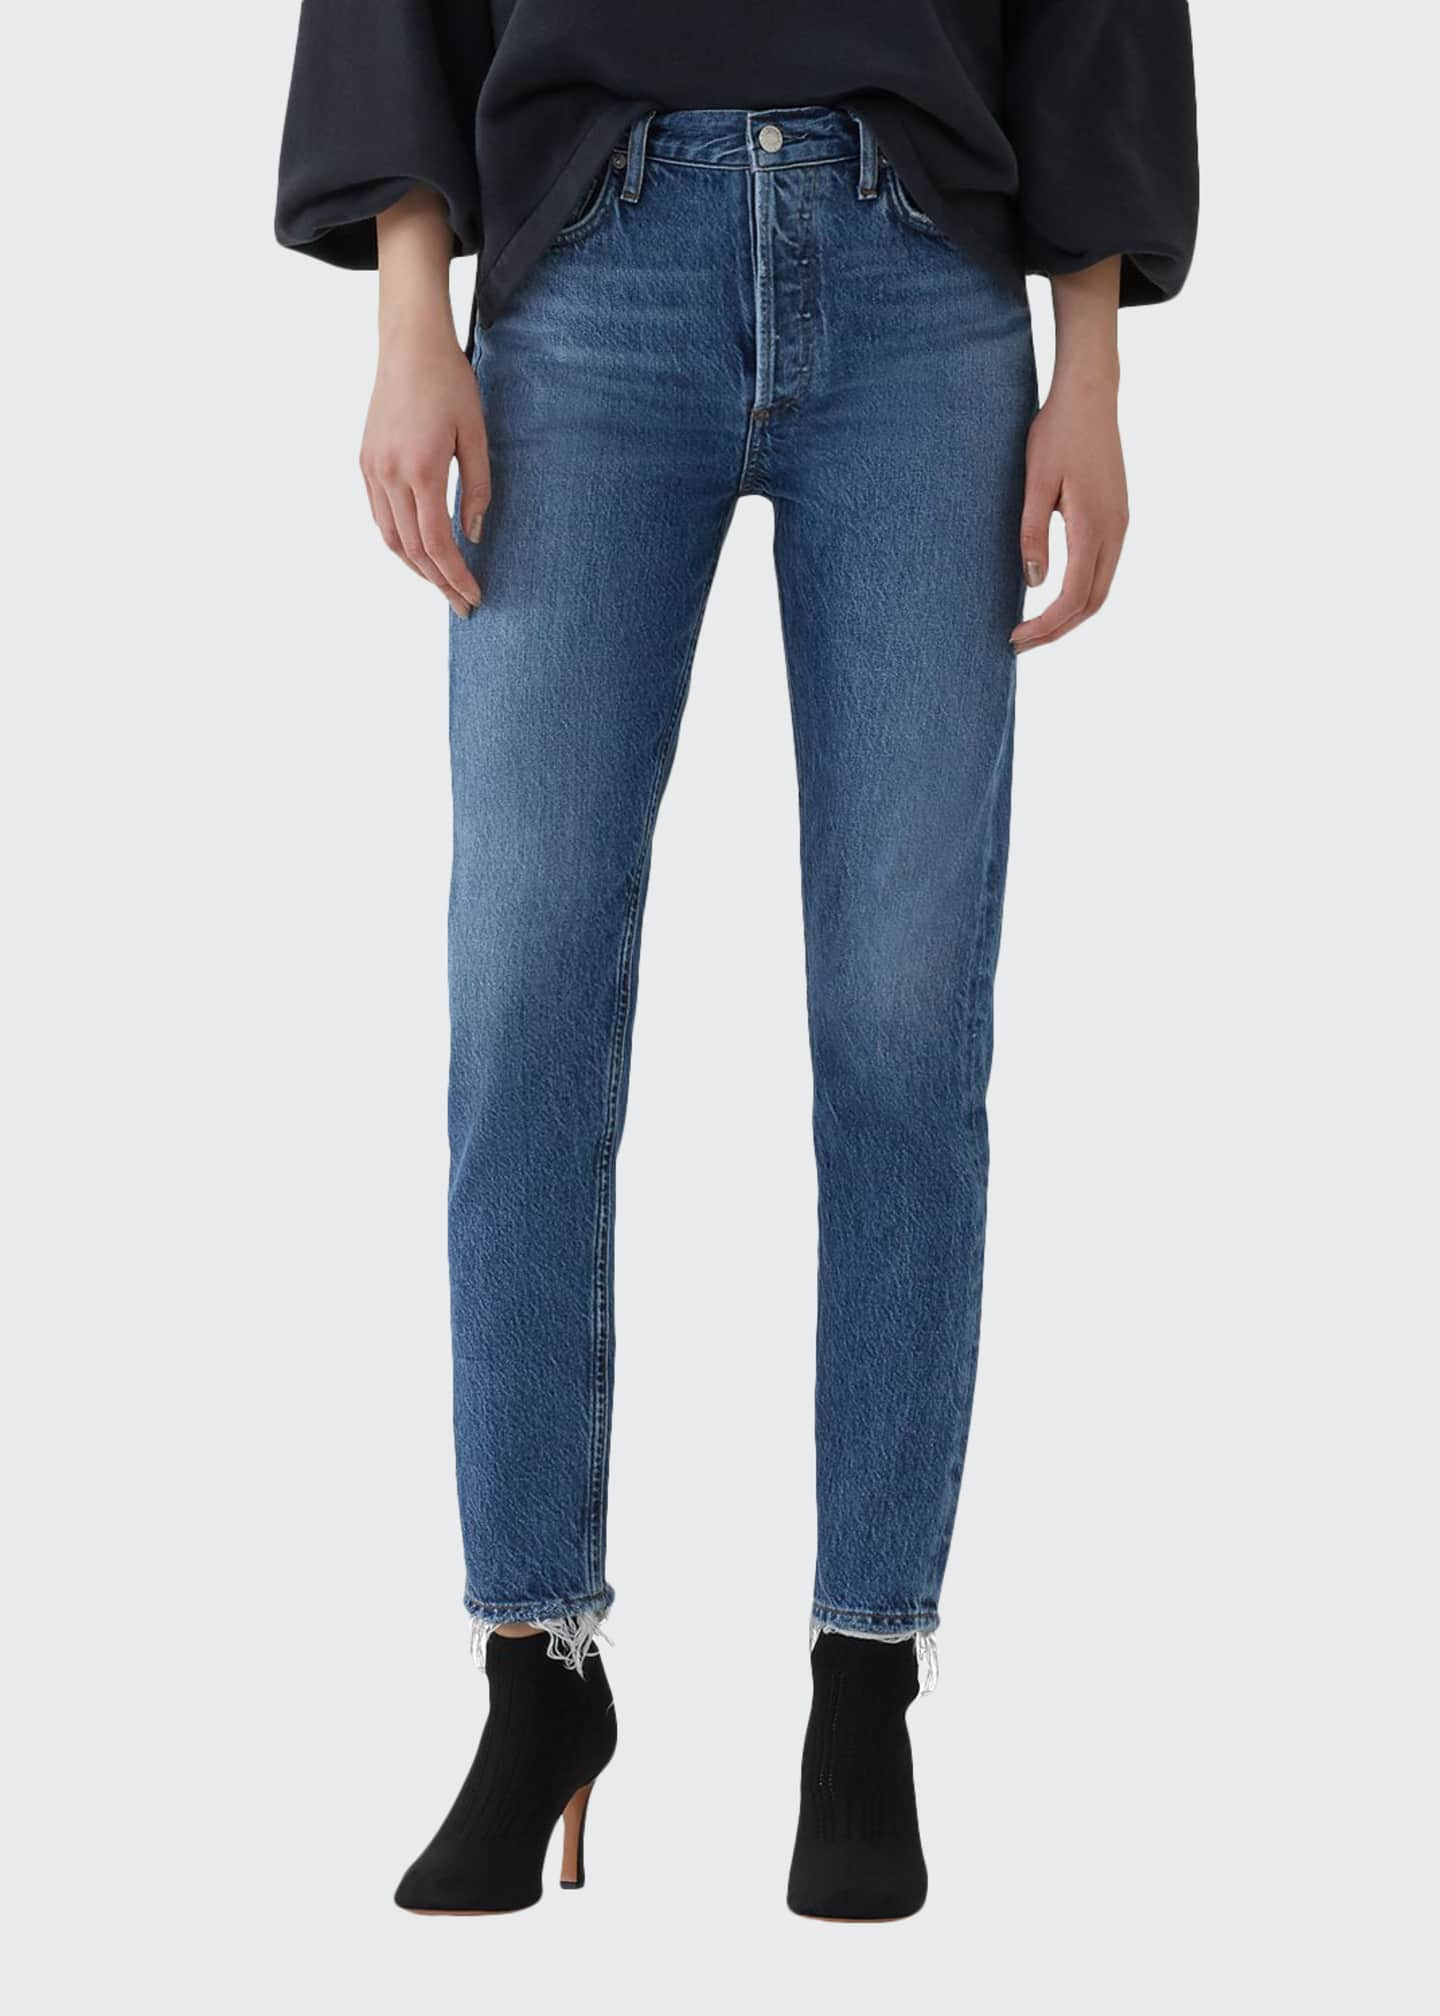 AGOLDE Jamie High-Rise Organic Denim Skinny Jeans with